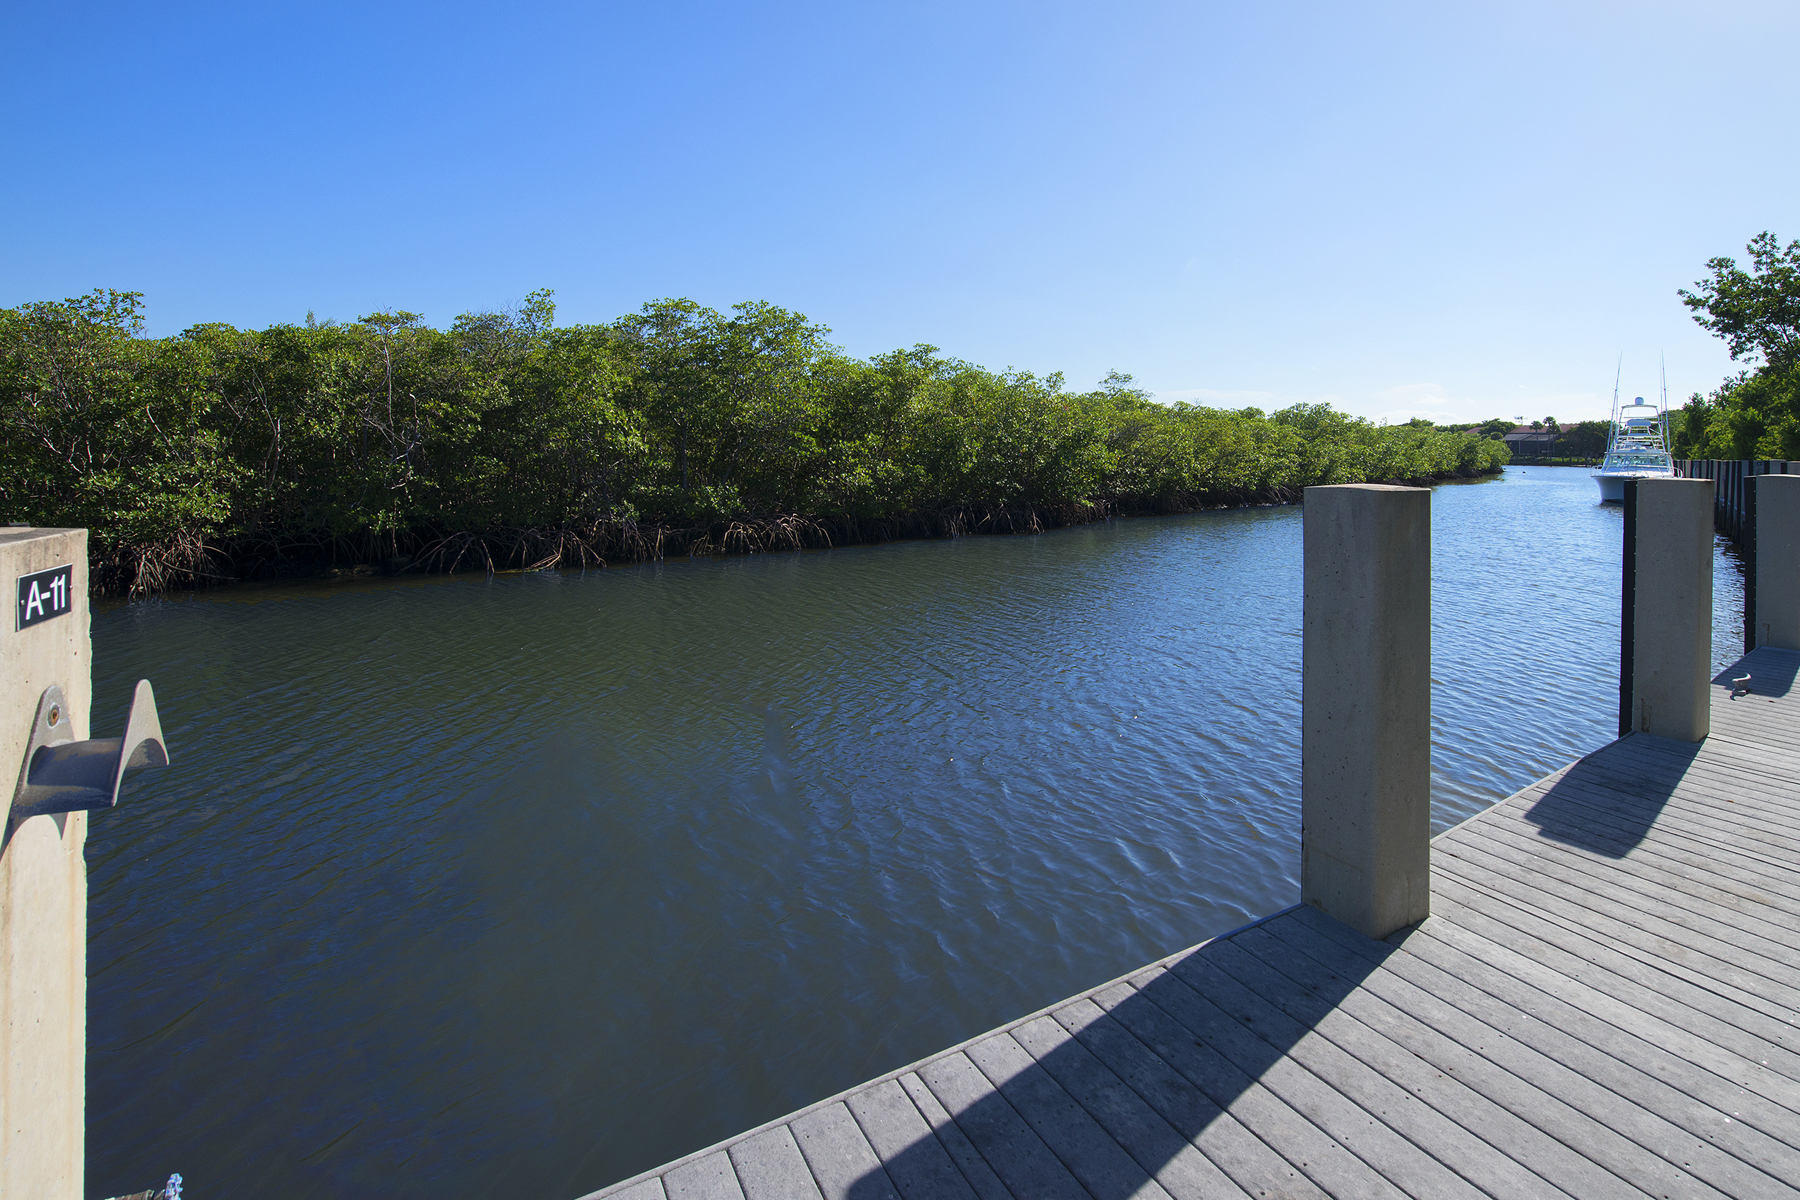 Additional photo for property listing at Prime Dockage Location at Ocean Reef 11 Gate House Road, Dock AS-11 Key Largo, Florida 33037 États-Unis